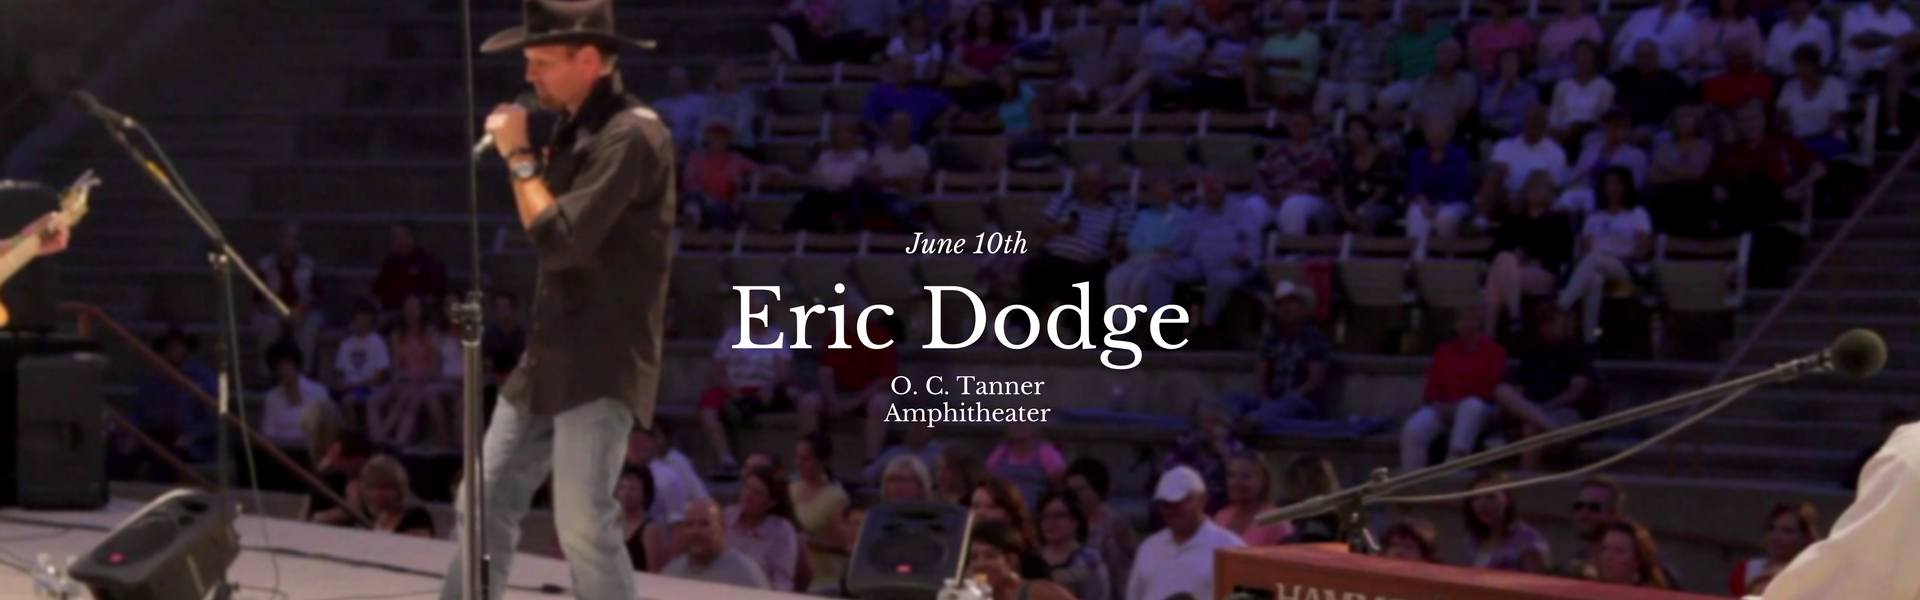 Eric Dodge Takes the Tanner